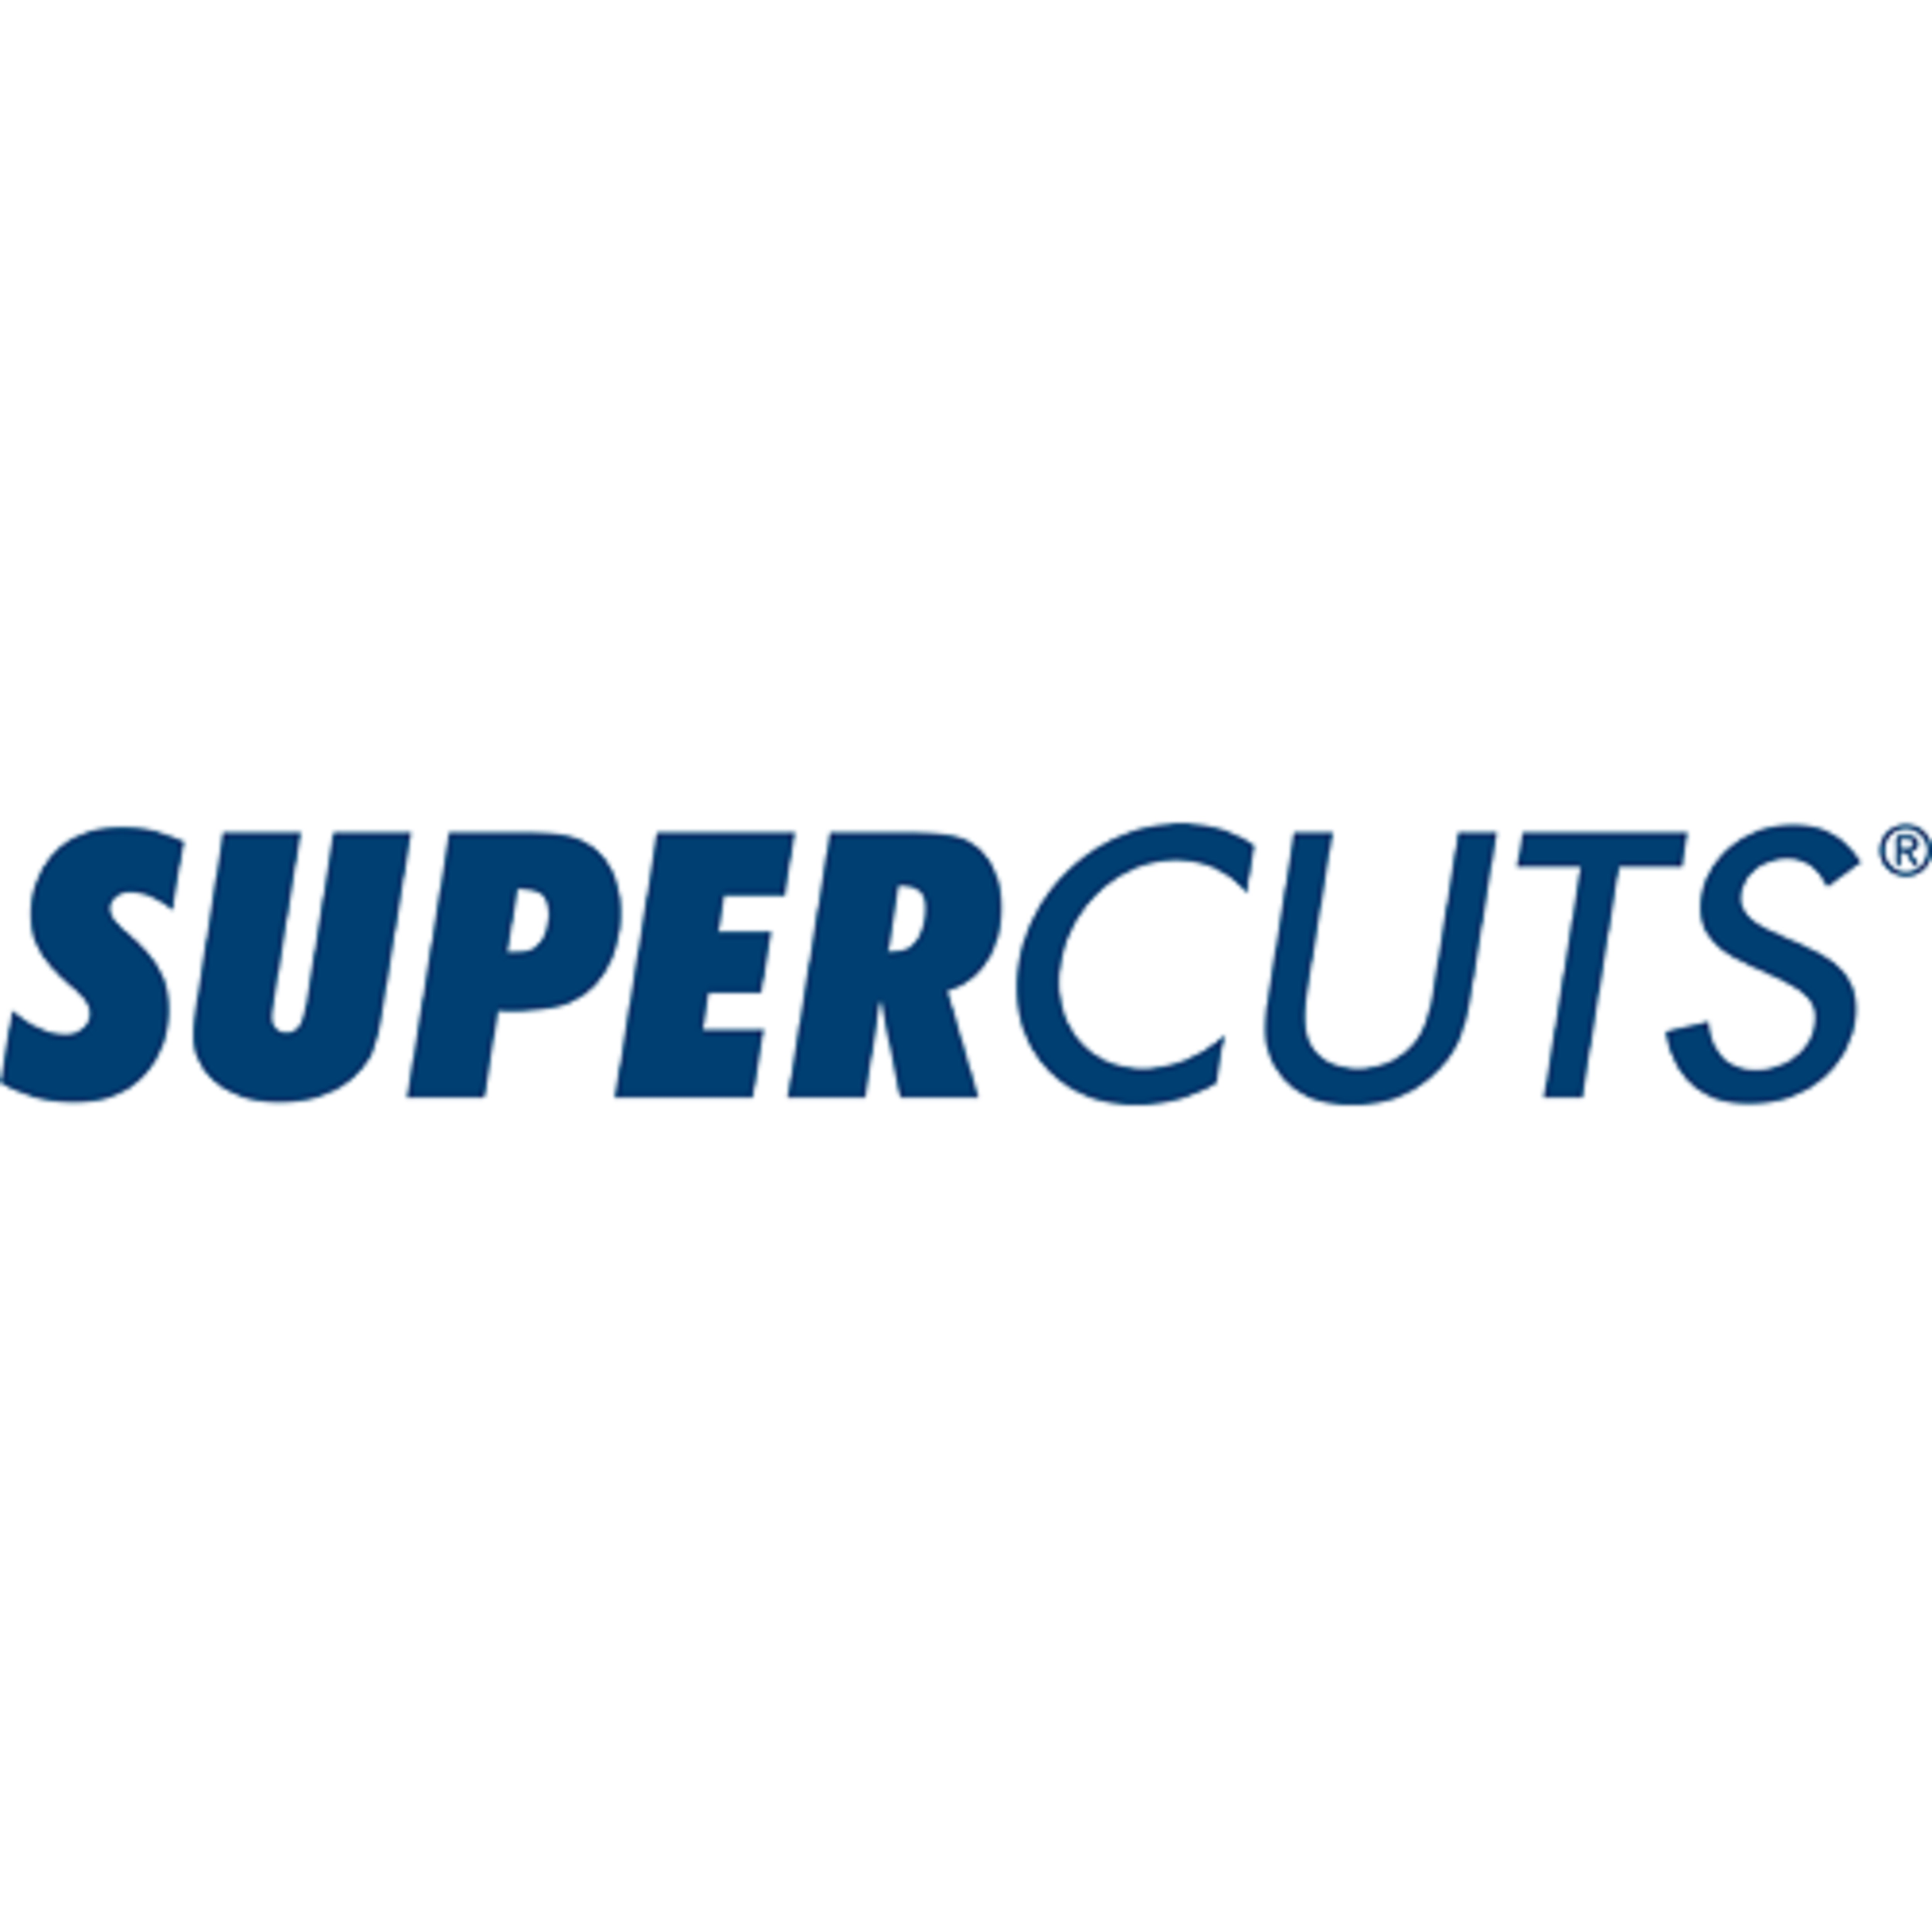 Supercuts 182 Summer St Ste 3a Kingston Ma 02364 Yp